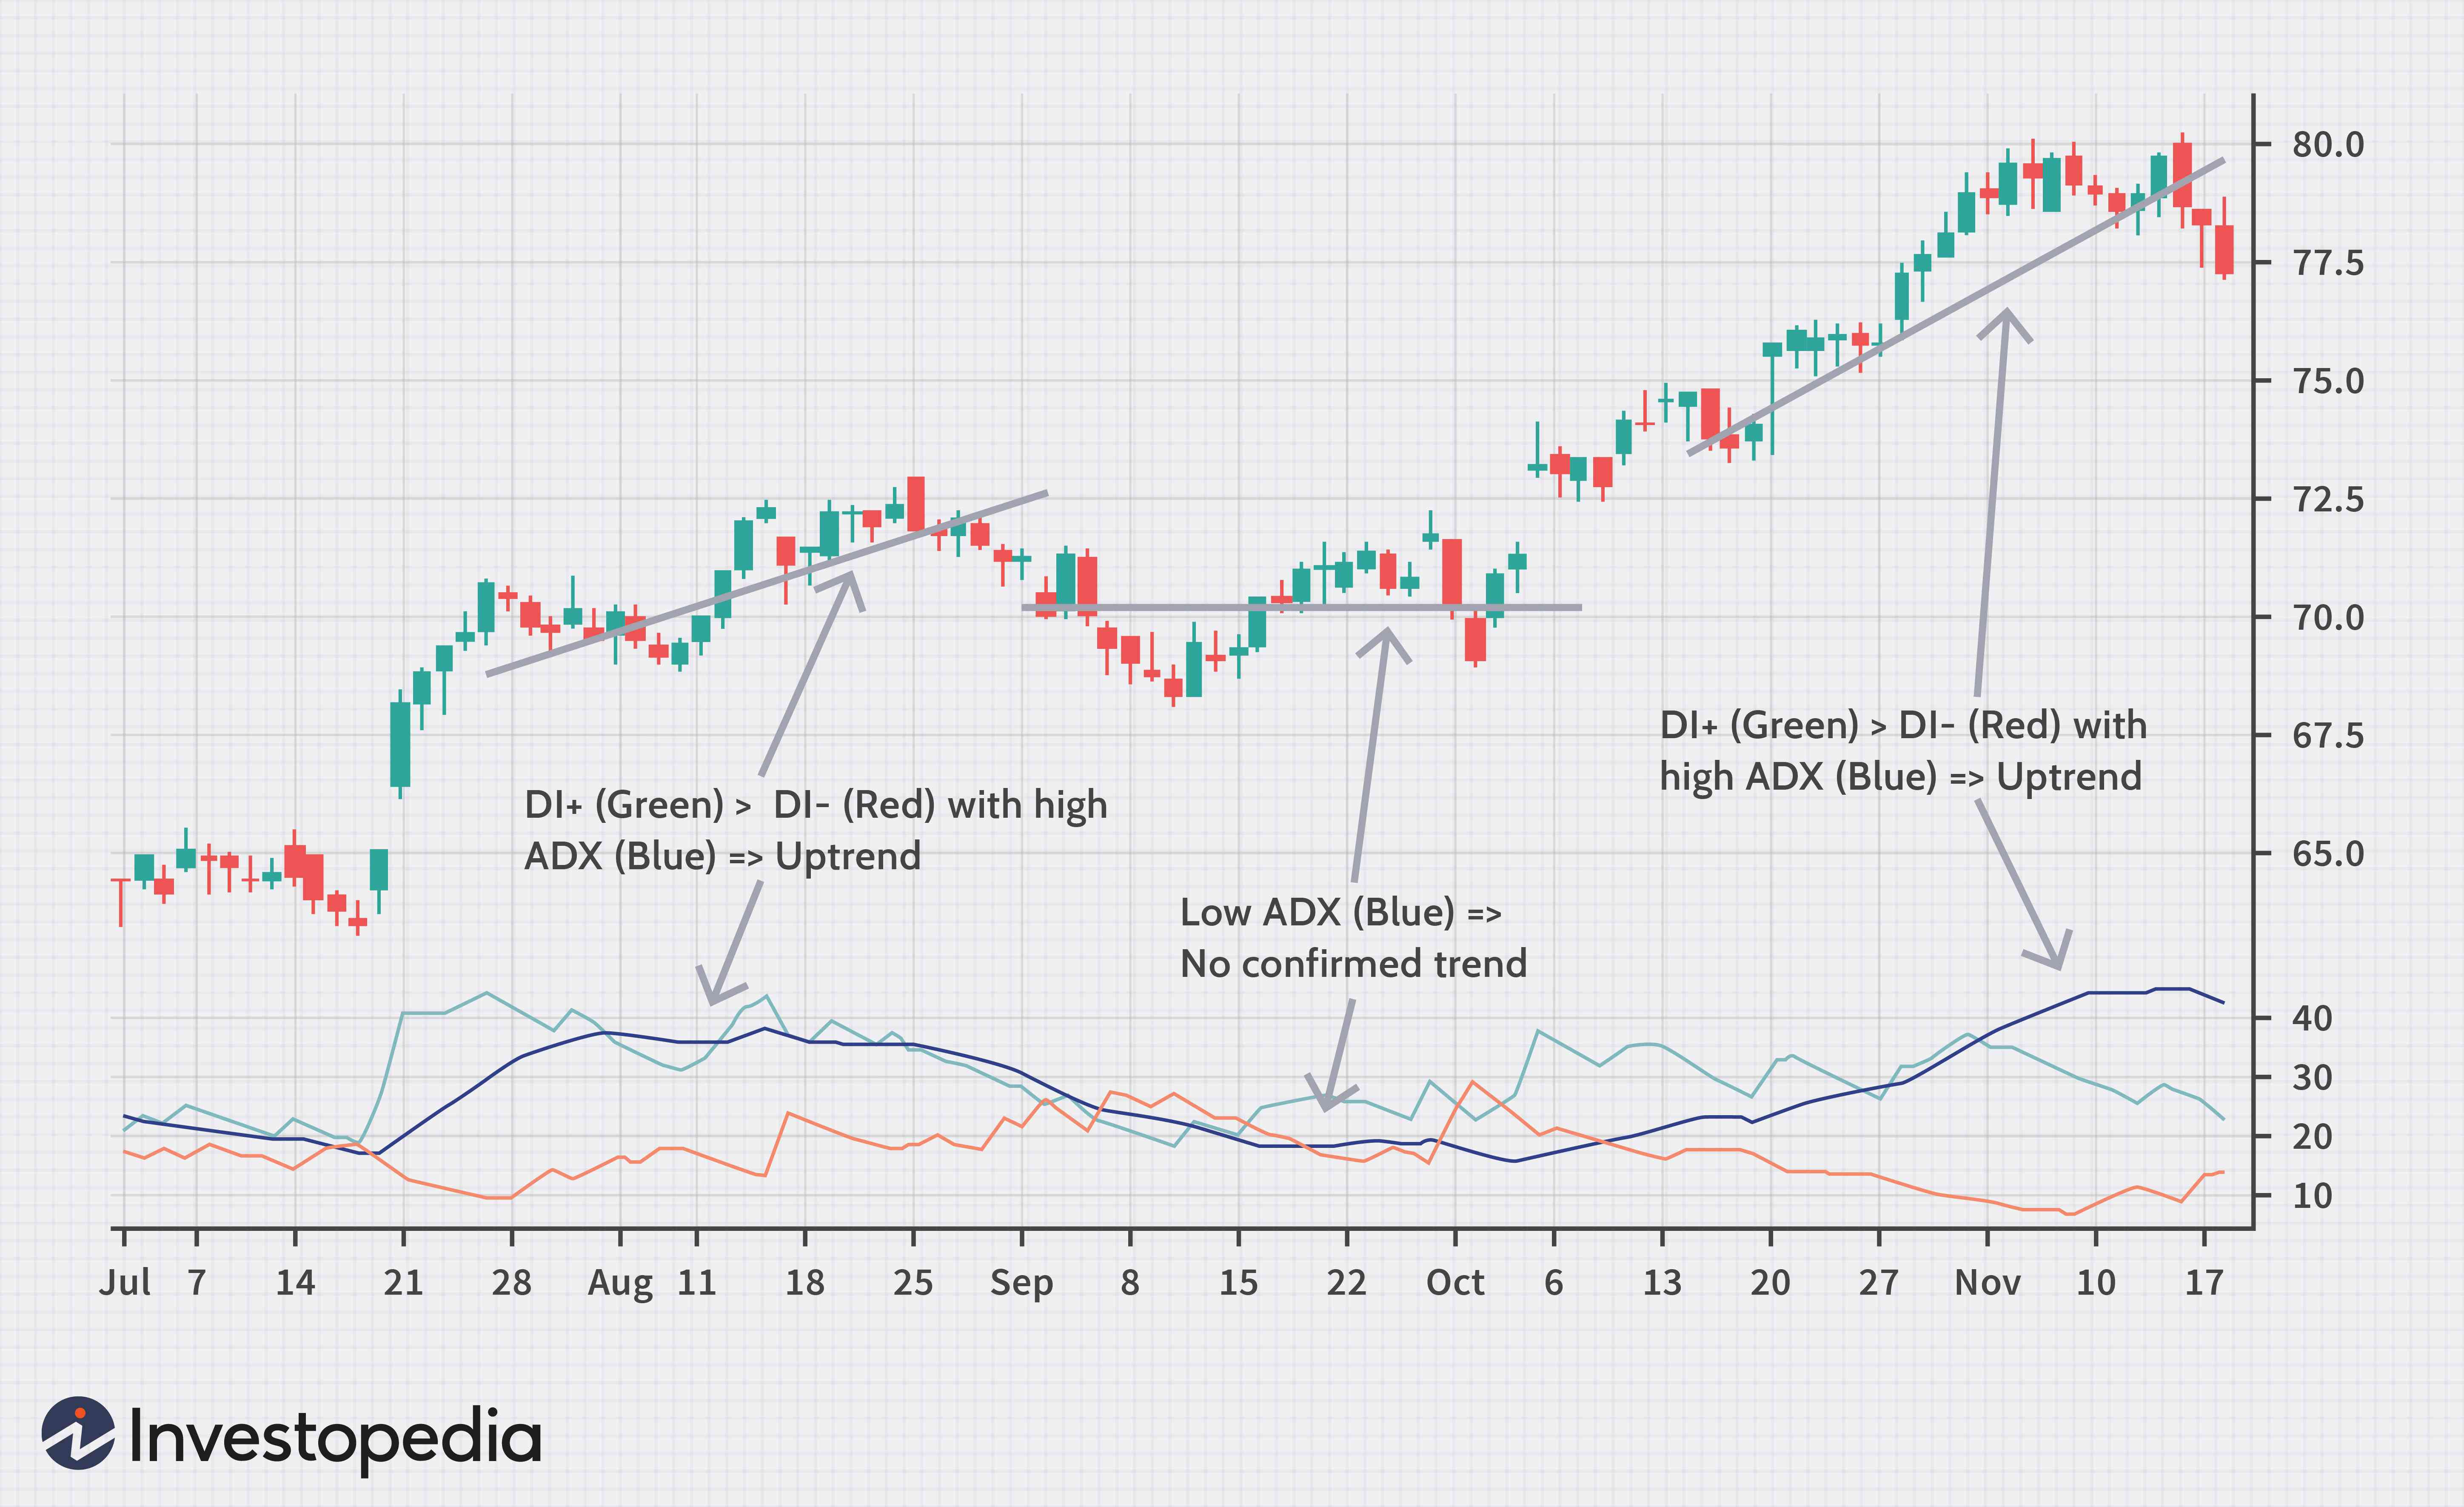 Binary options strategy key indicators of potential insider bloomberg sports betting function